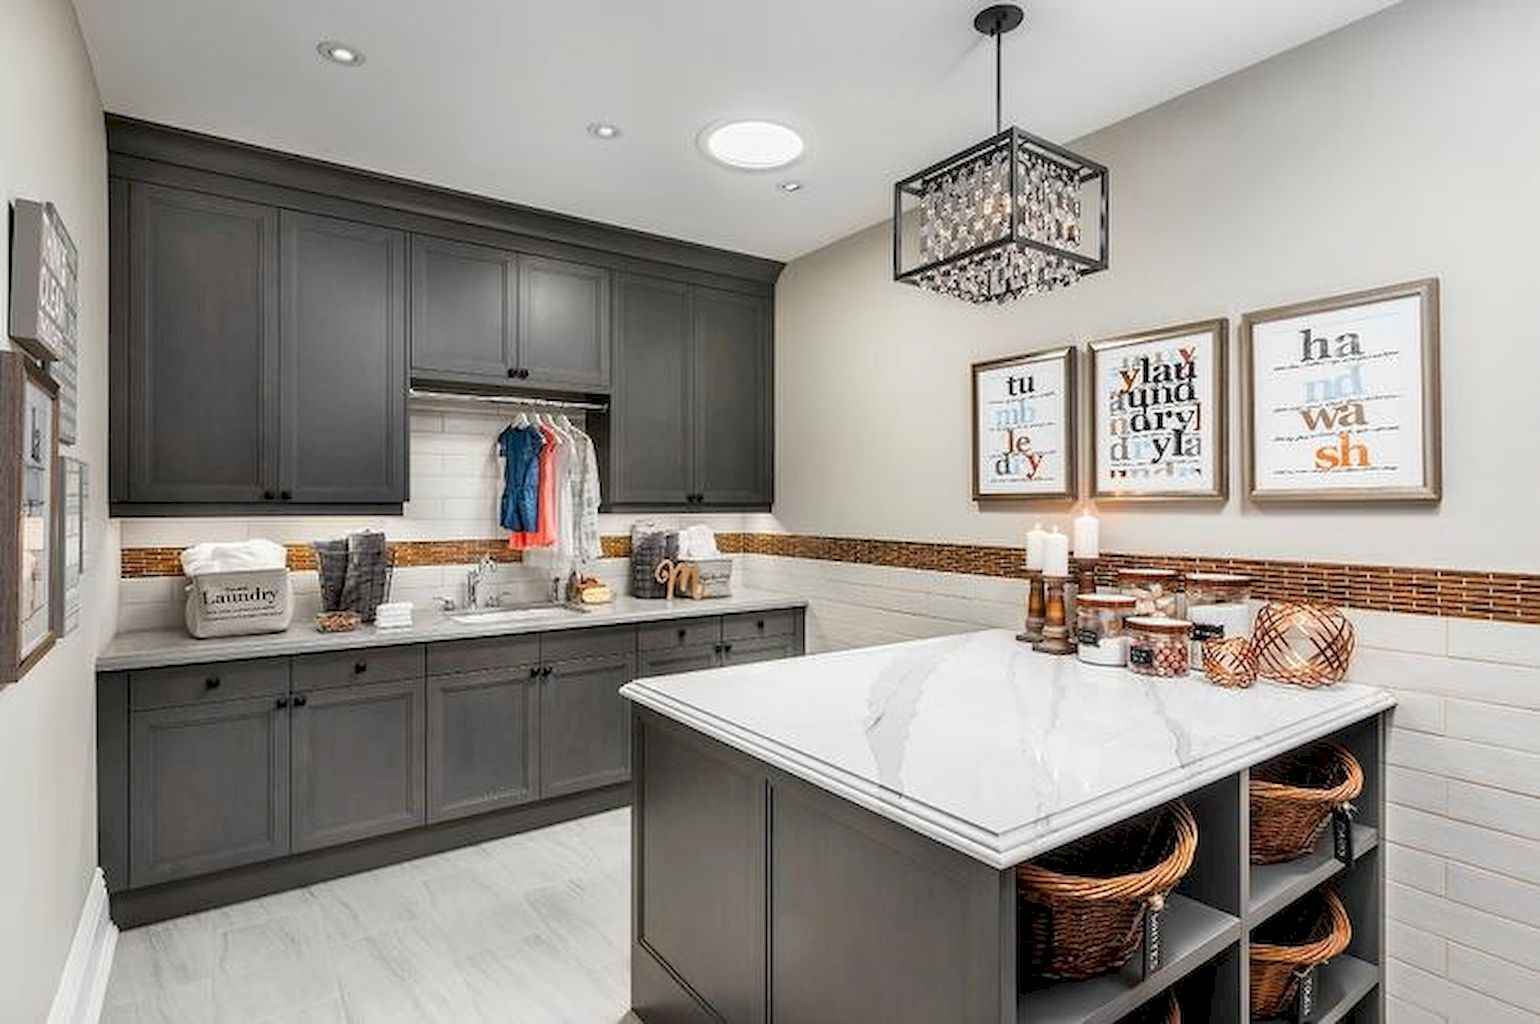 45 Rustic Farmhouse Laundry Room Design Ideas and Makeover (27)